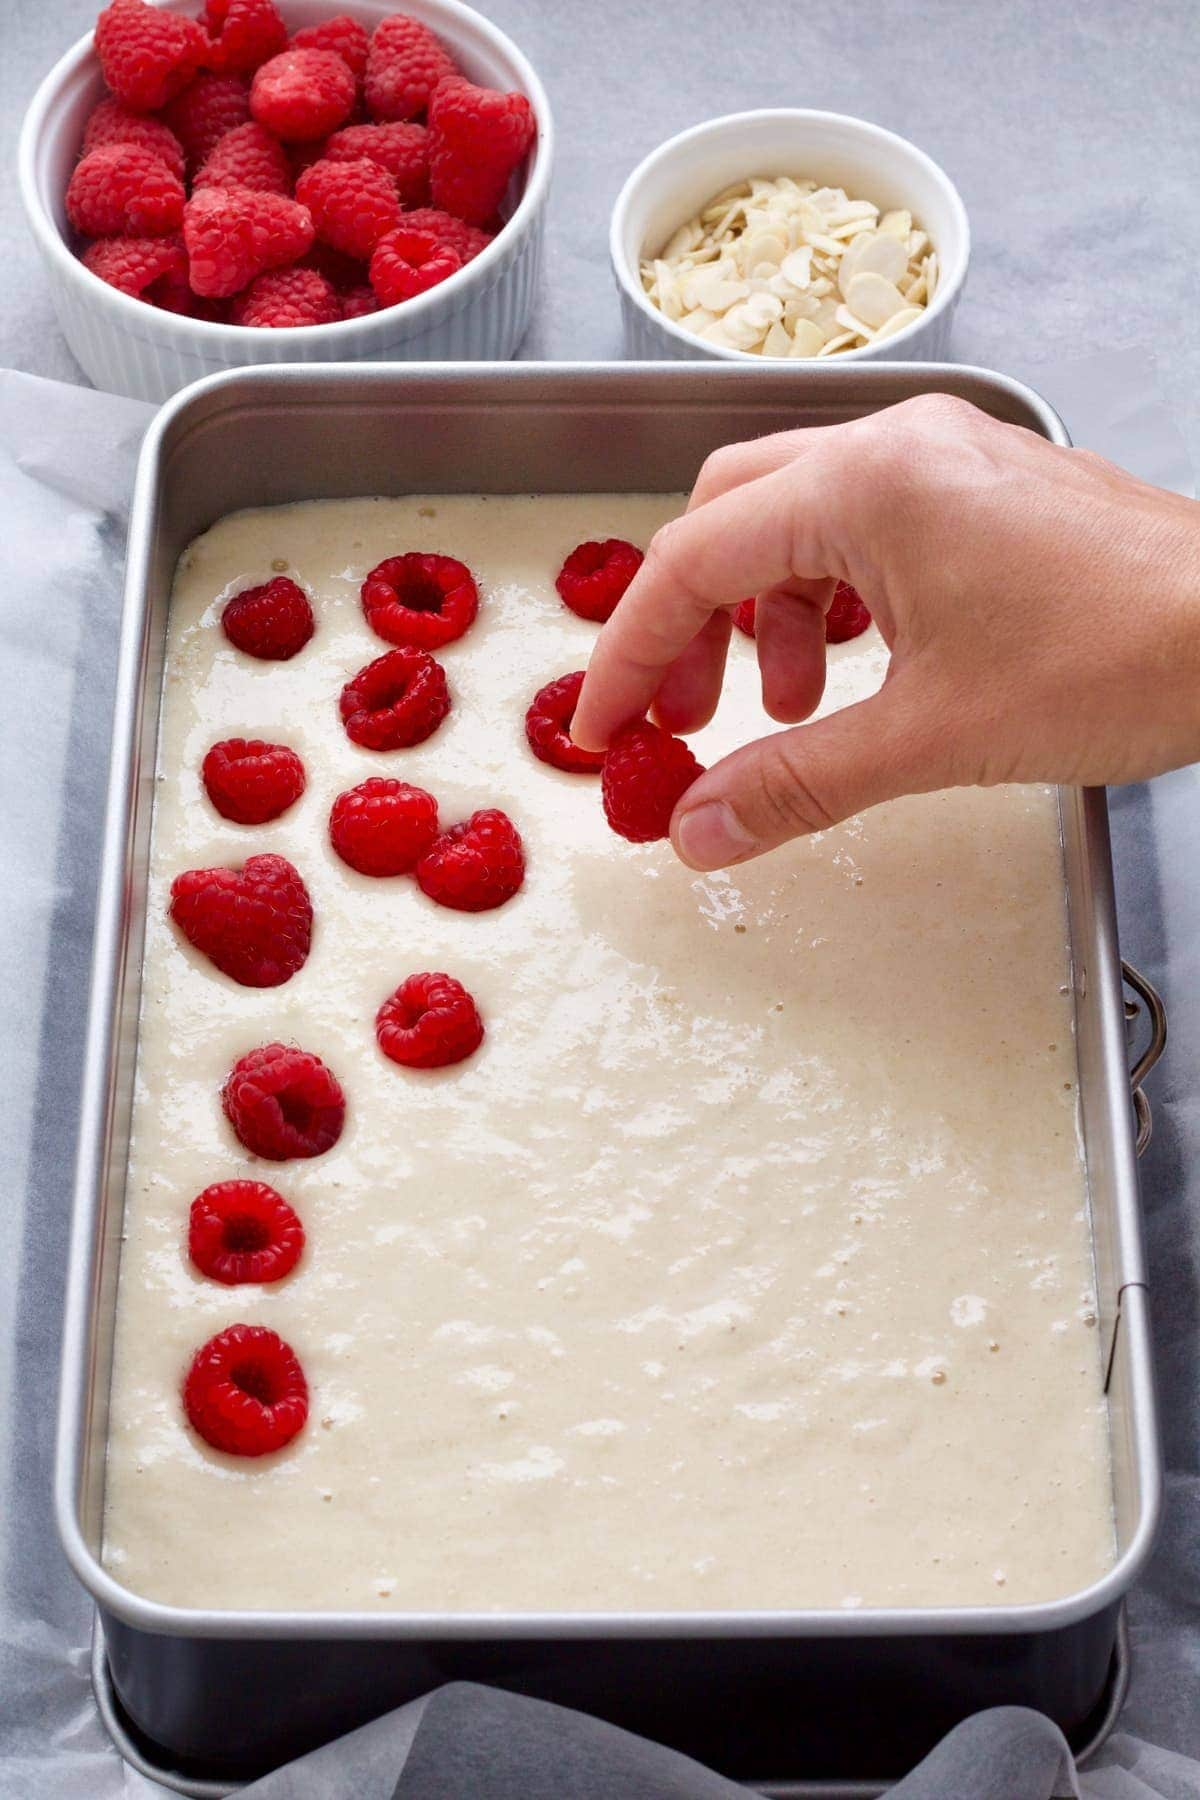 Hand putting raspberries on top of the cake batter.